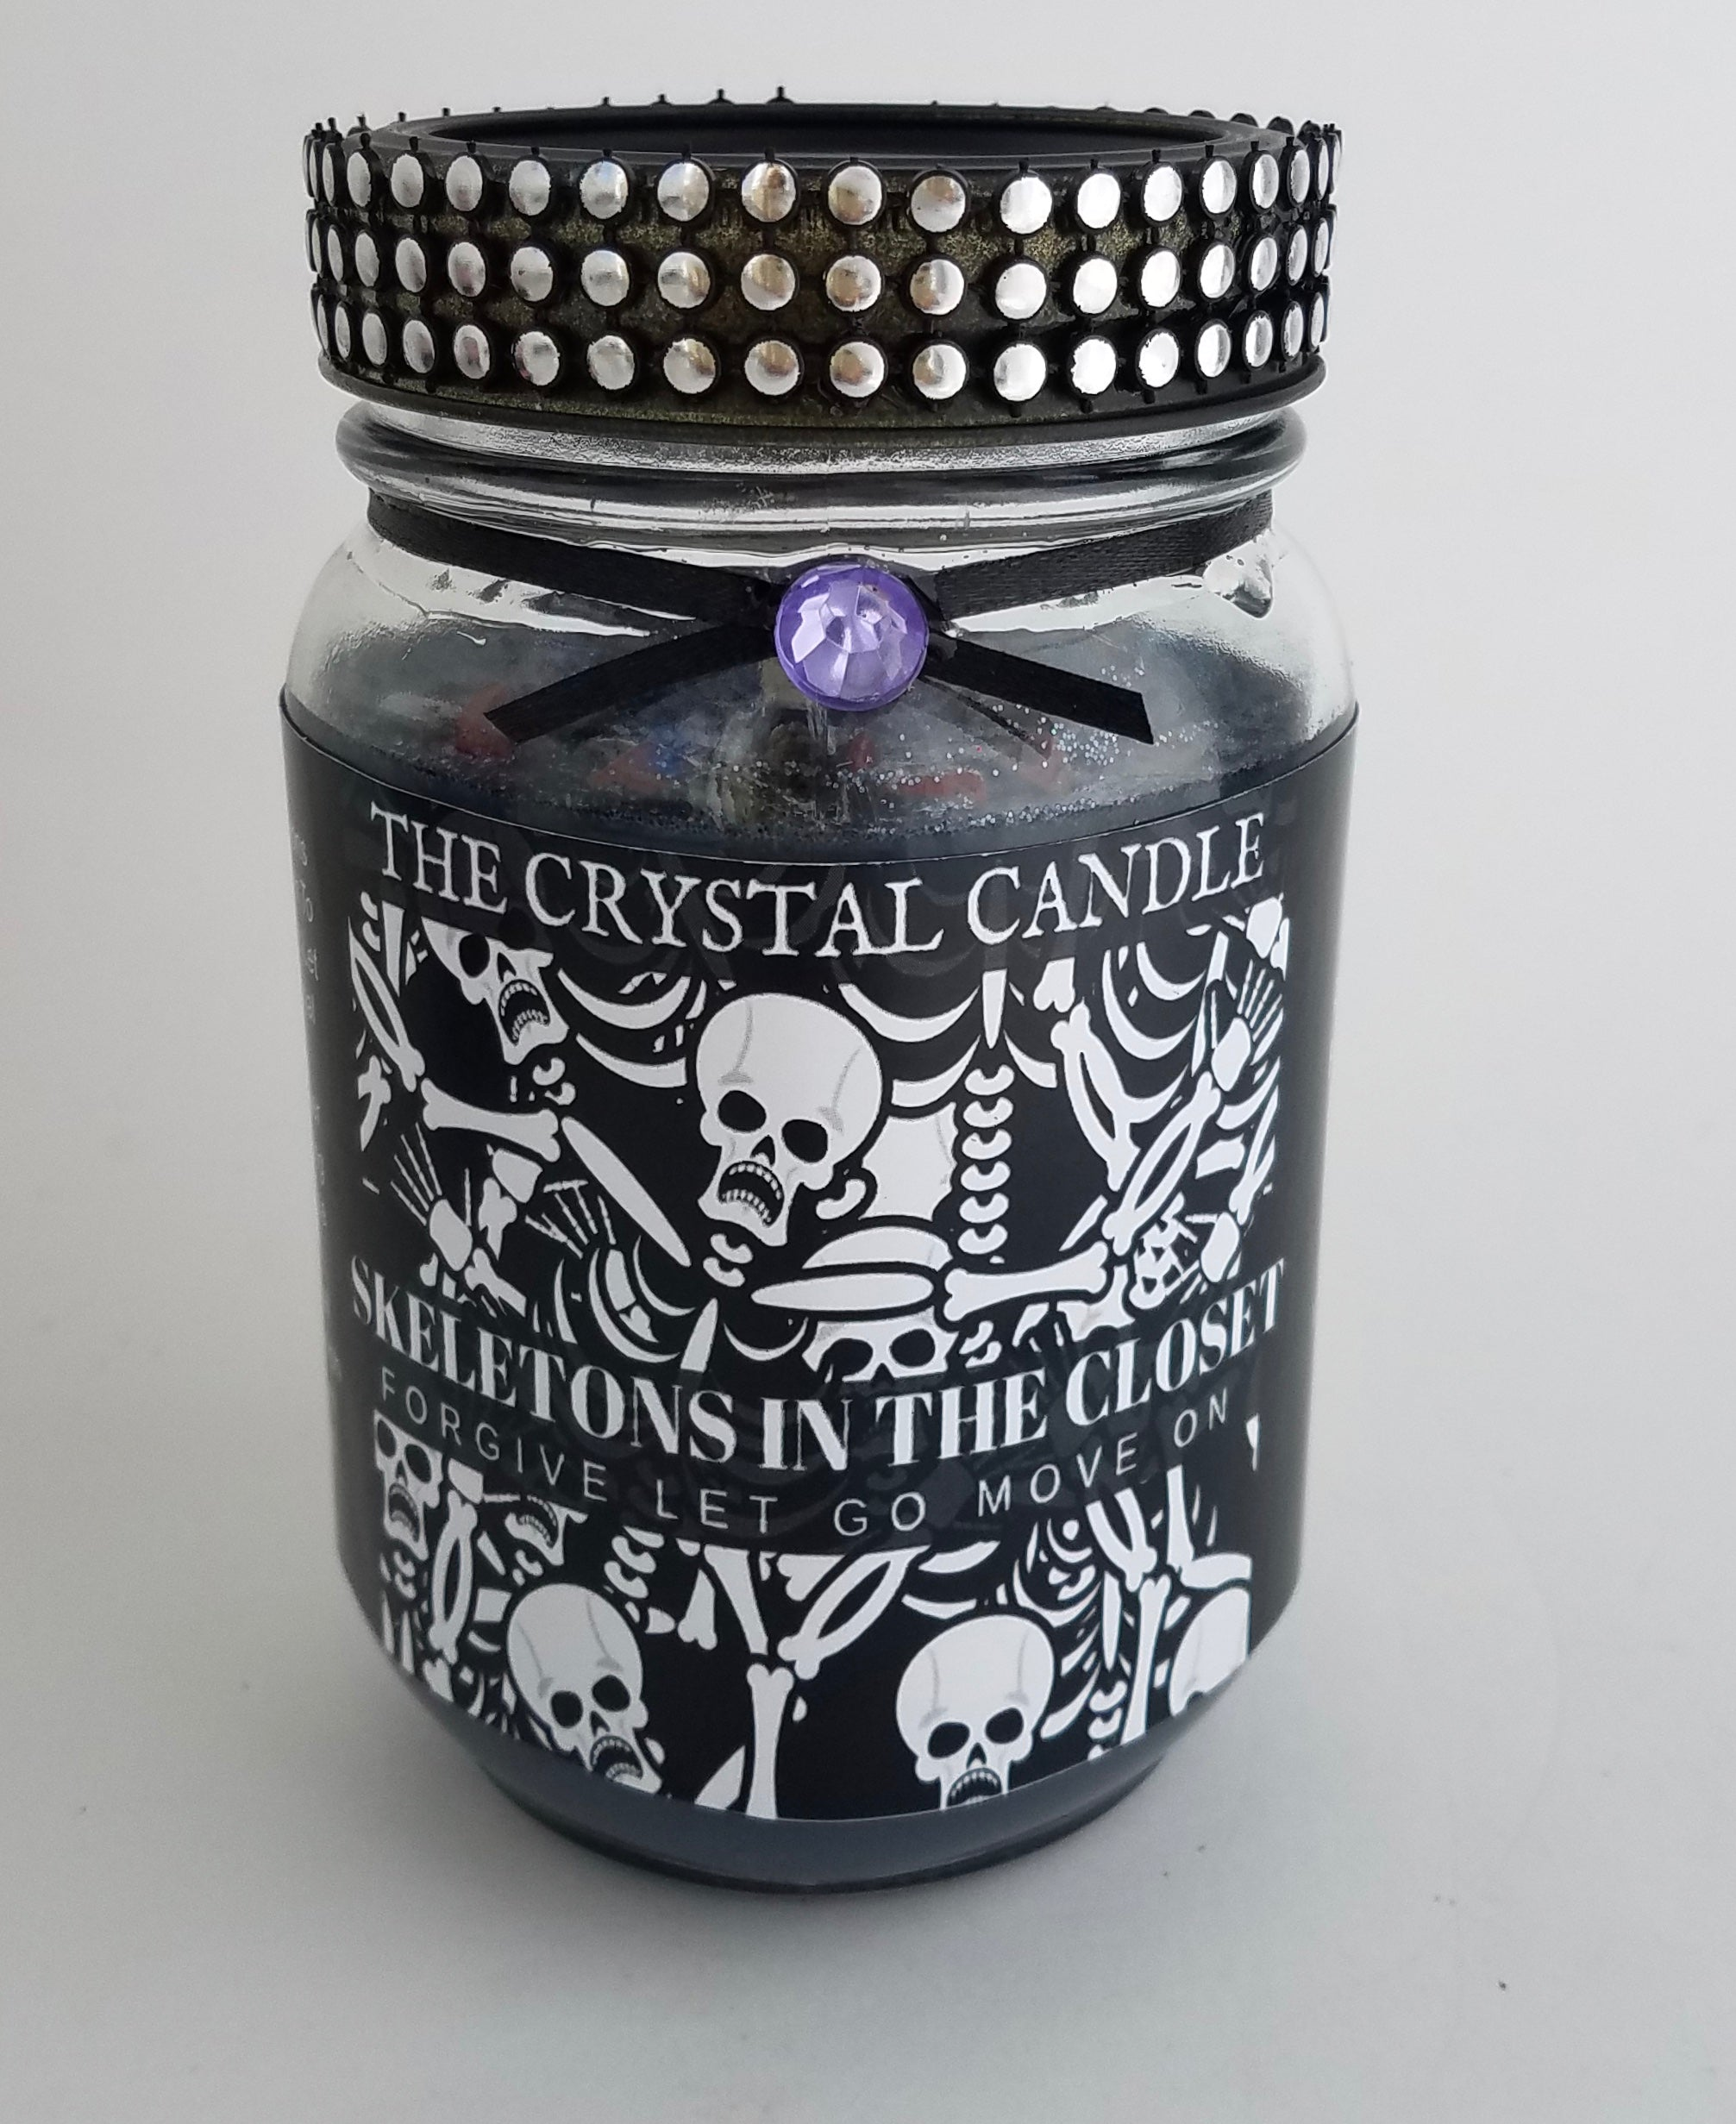 Skeletons In The Closet Crystal Candle To Remove Your Emotional Baggage